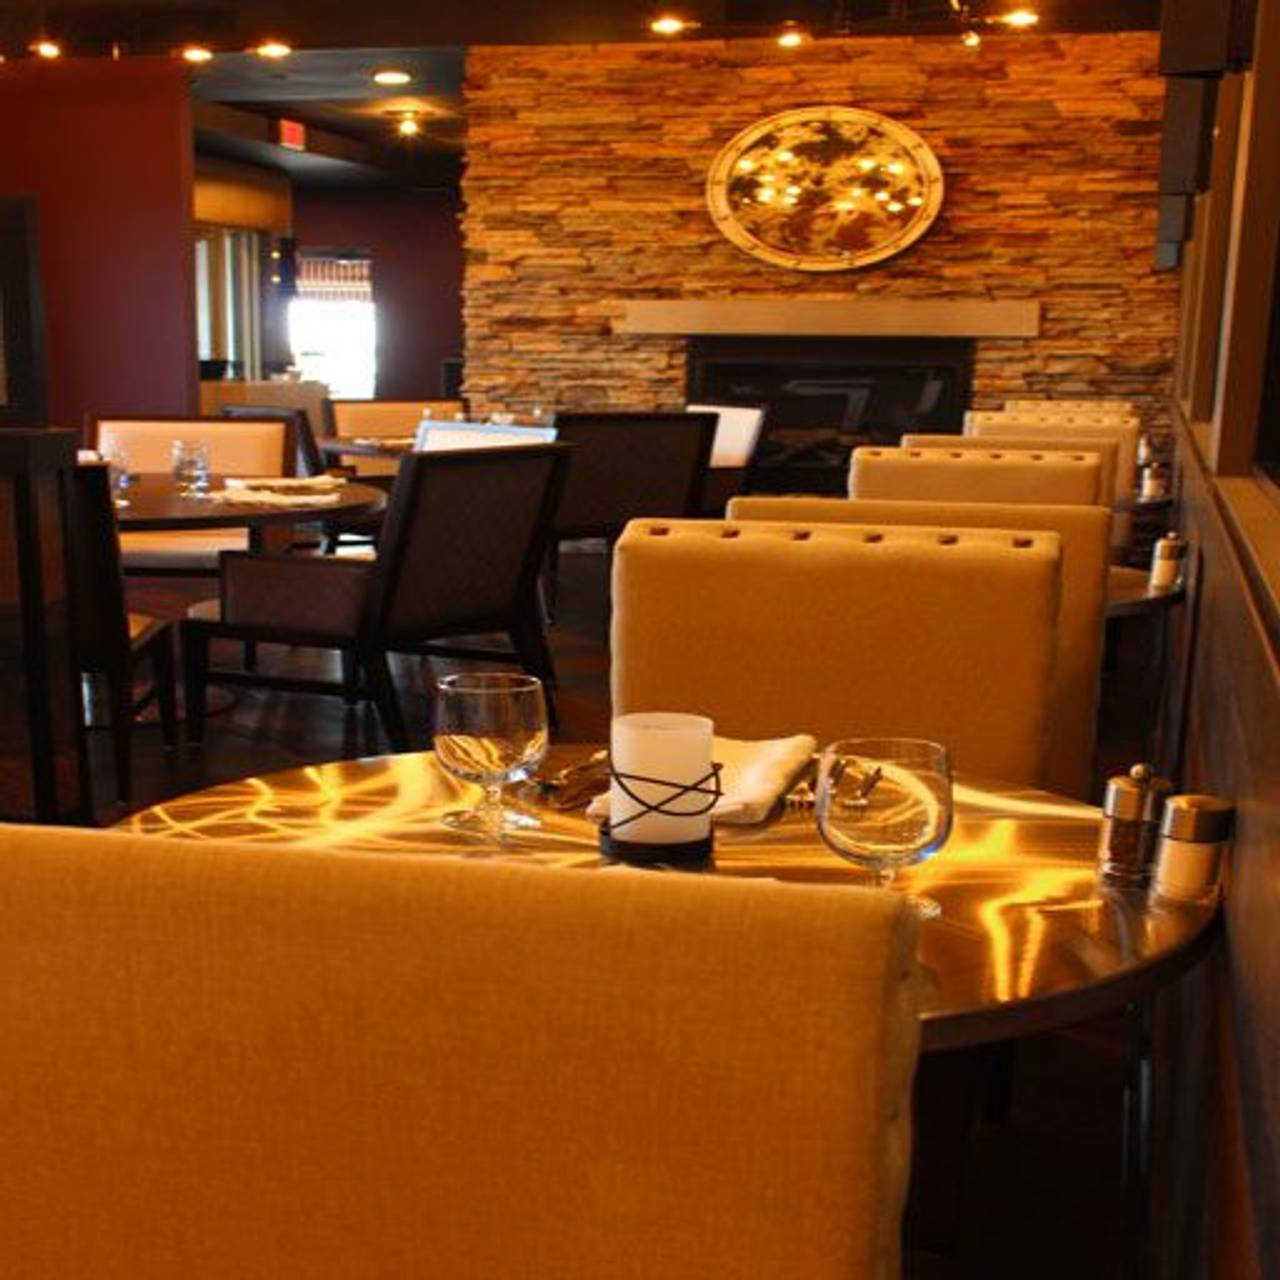 Jacksons Restaurant Rotisserie Bar Doubletree Hotel Moon Township Pa